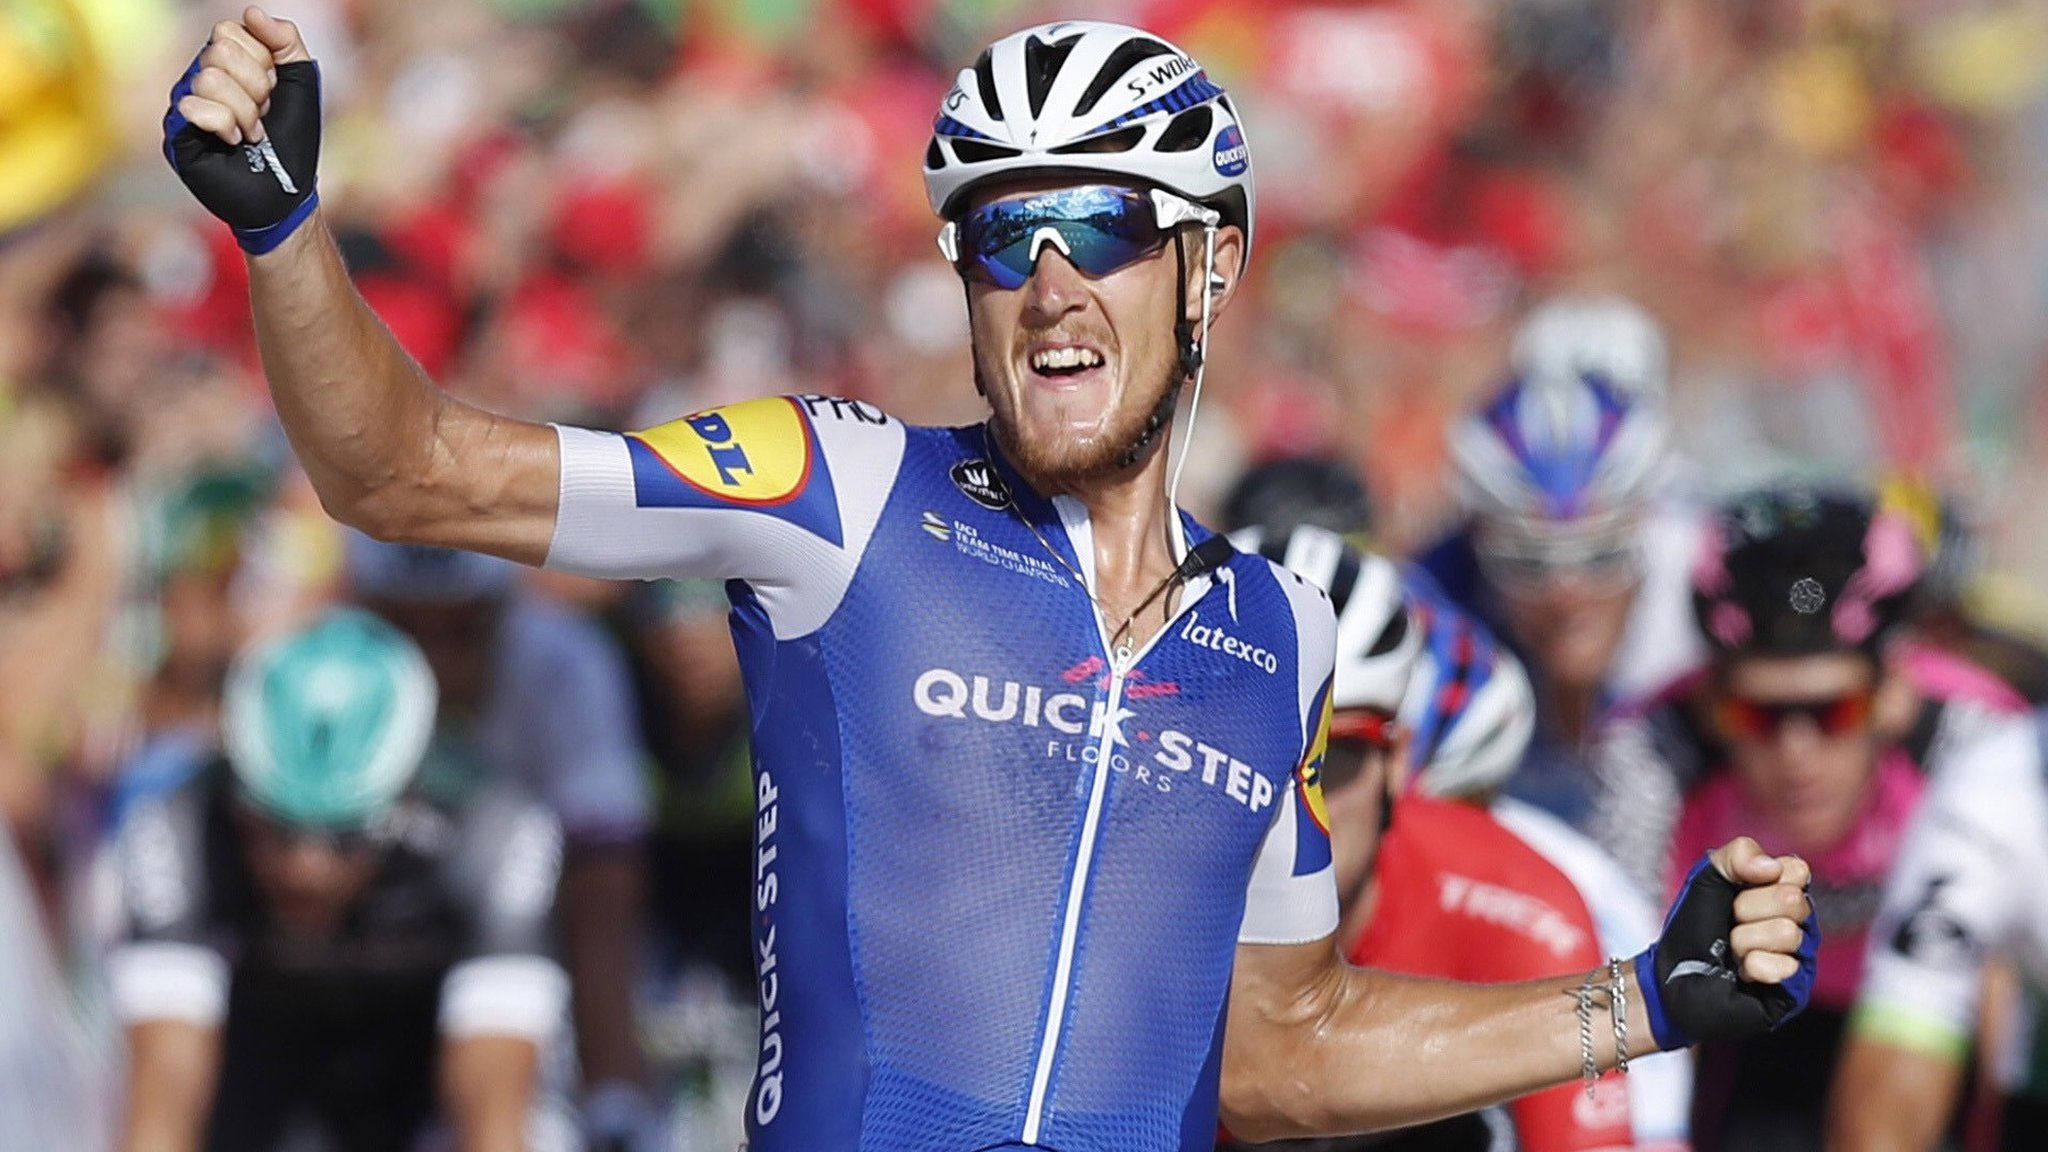 Vuelta a Espana: Matteo Trentin wins stage four as Chris Froome stays in red